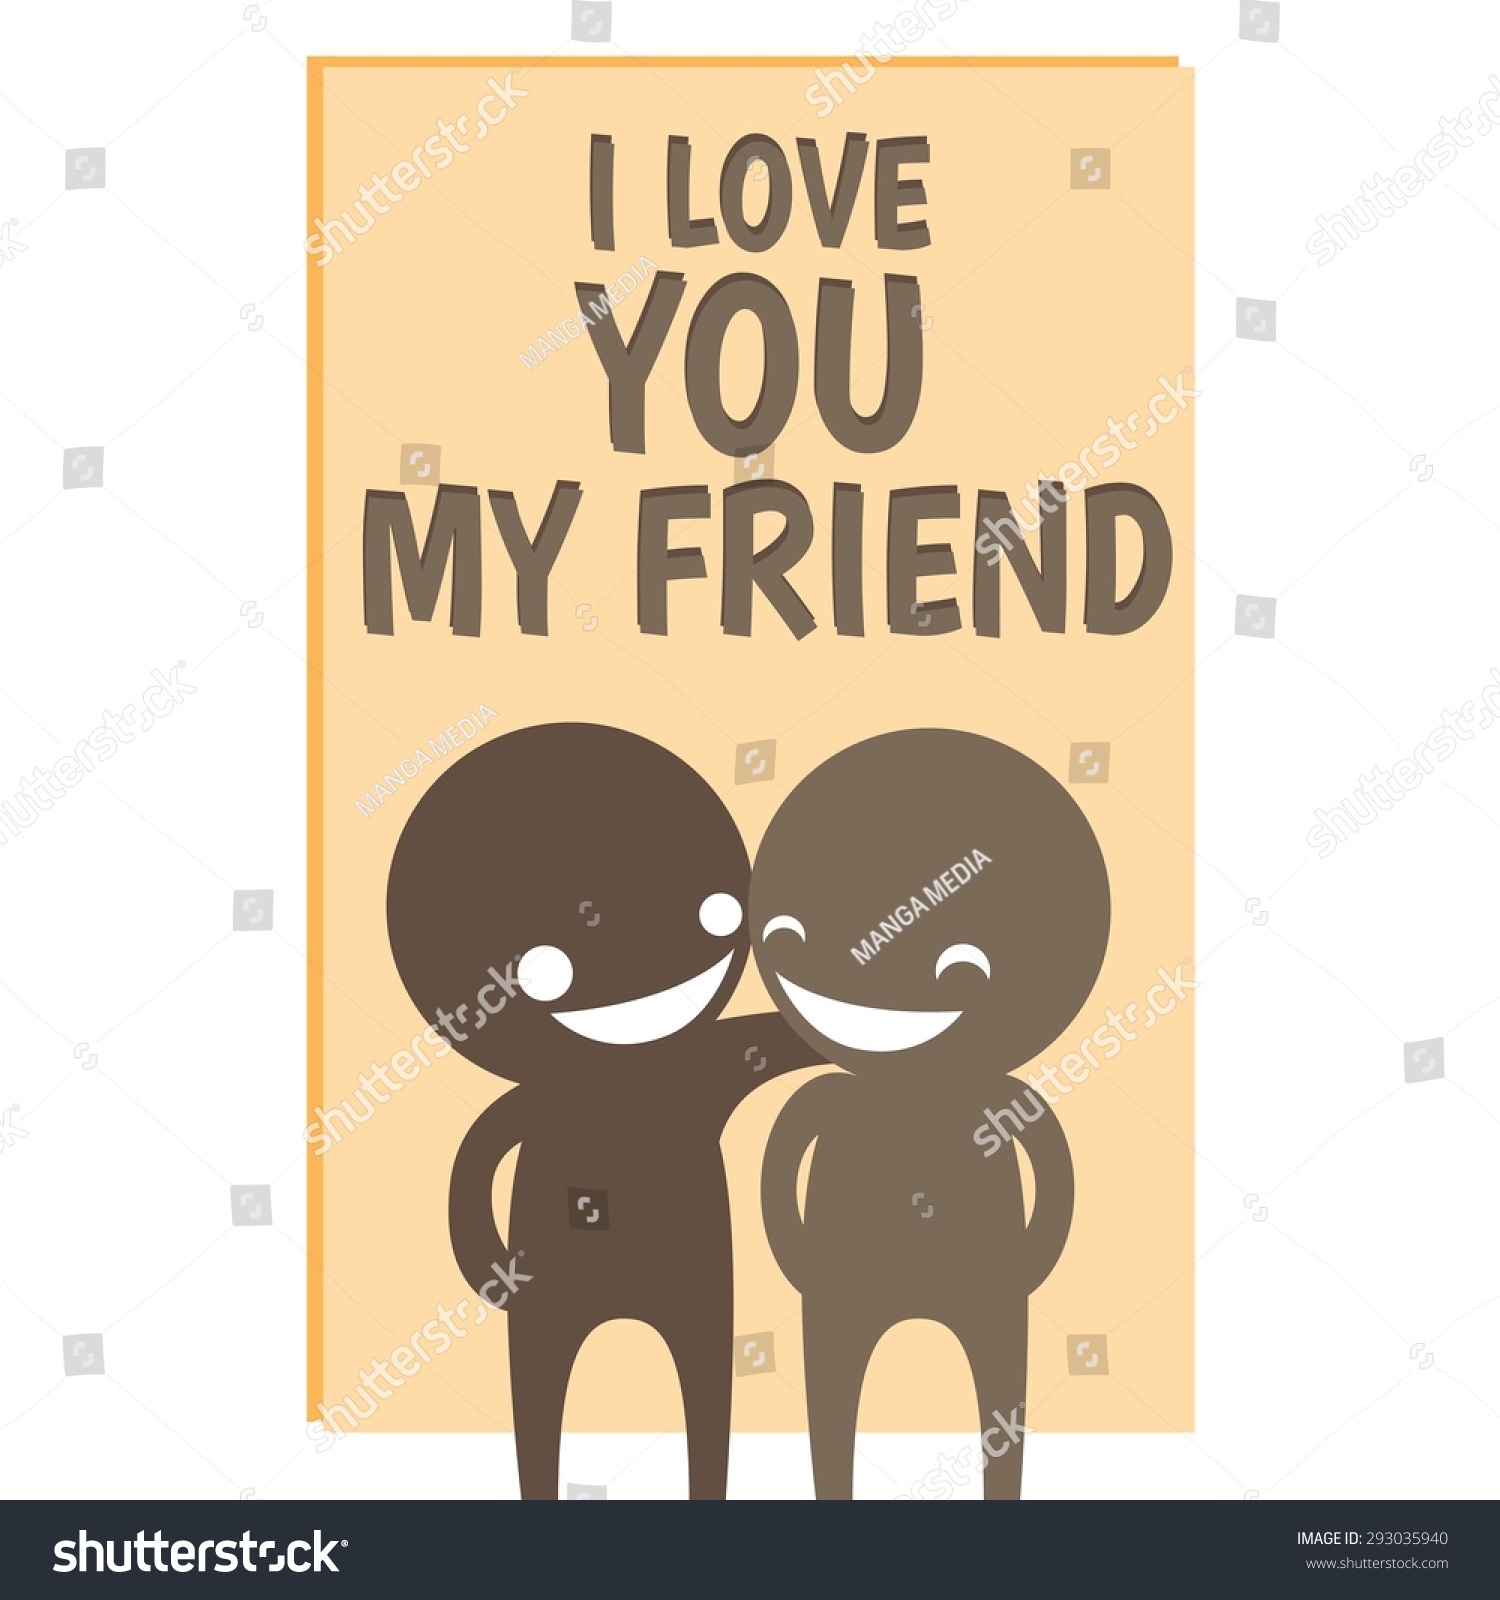 image gallery i love you friend